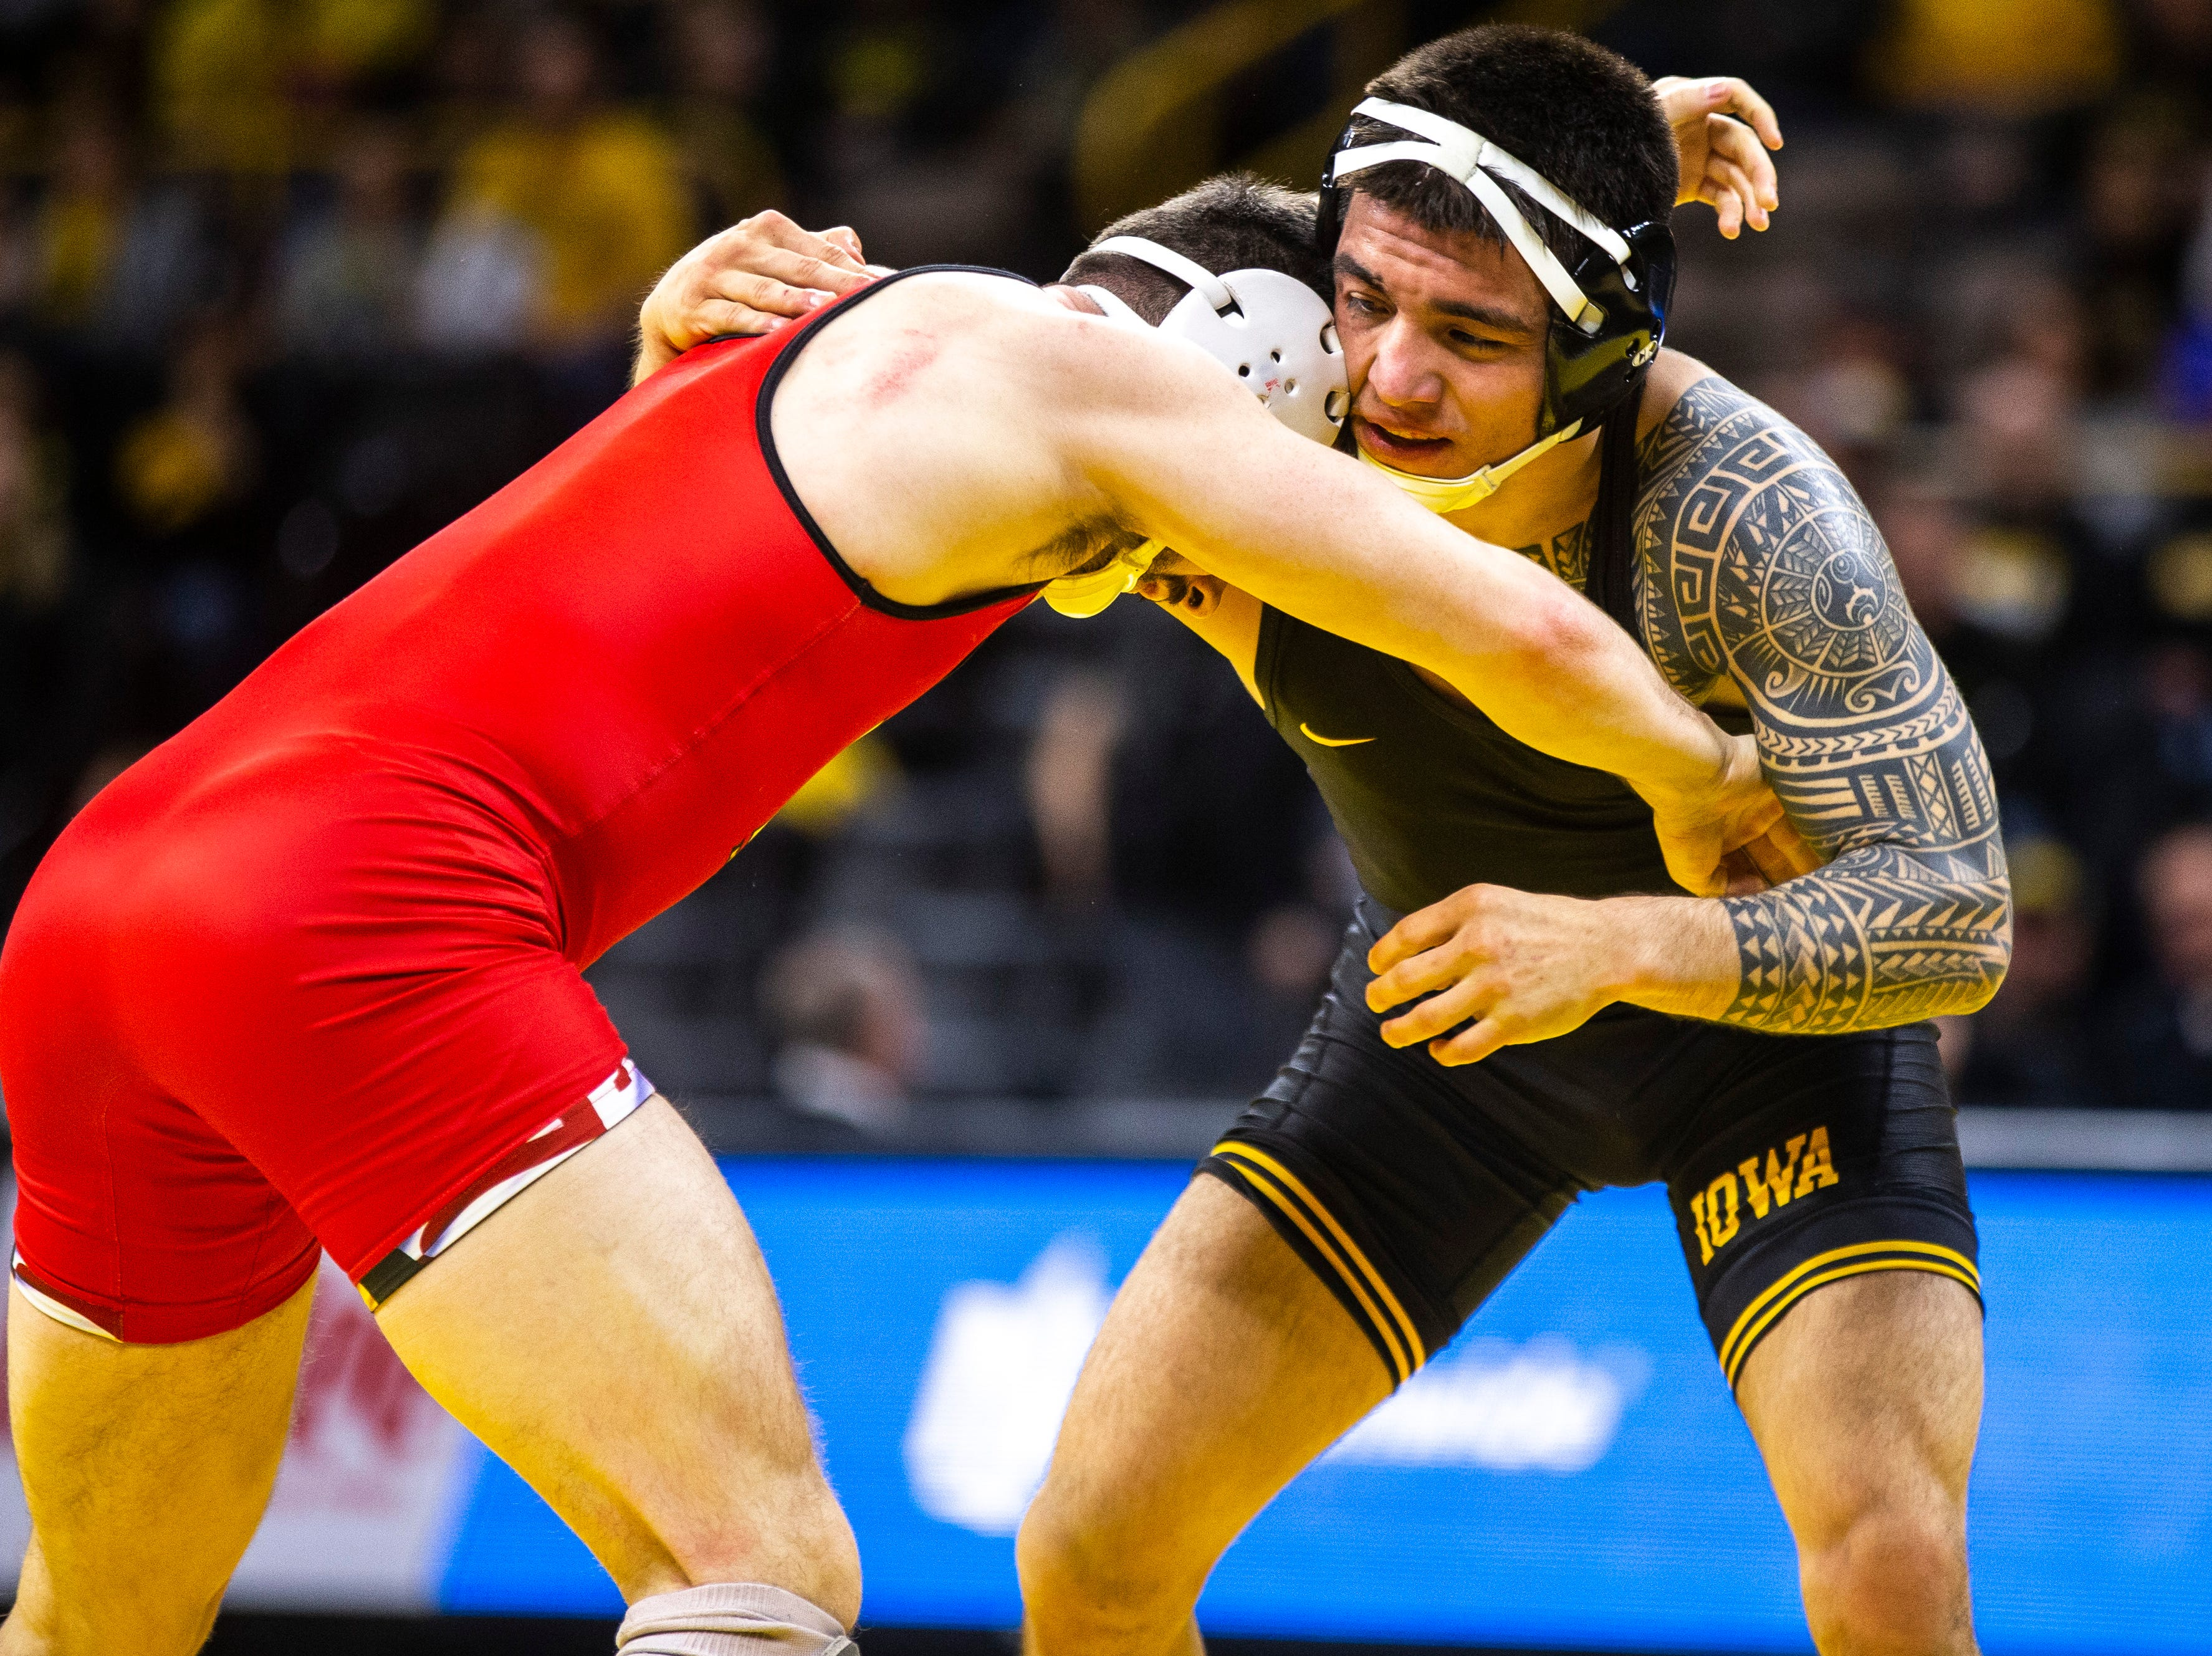 Iowa's Pat Lugo, right, wrestles Maryland's Pete Tedesco at 149 during a NCAA Big Ten Conference wrestling dual on Friday, Feb. 8, 2019 at Carver-Hawkeye Arena in Iowa City, Iowa.